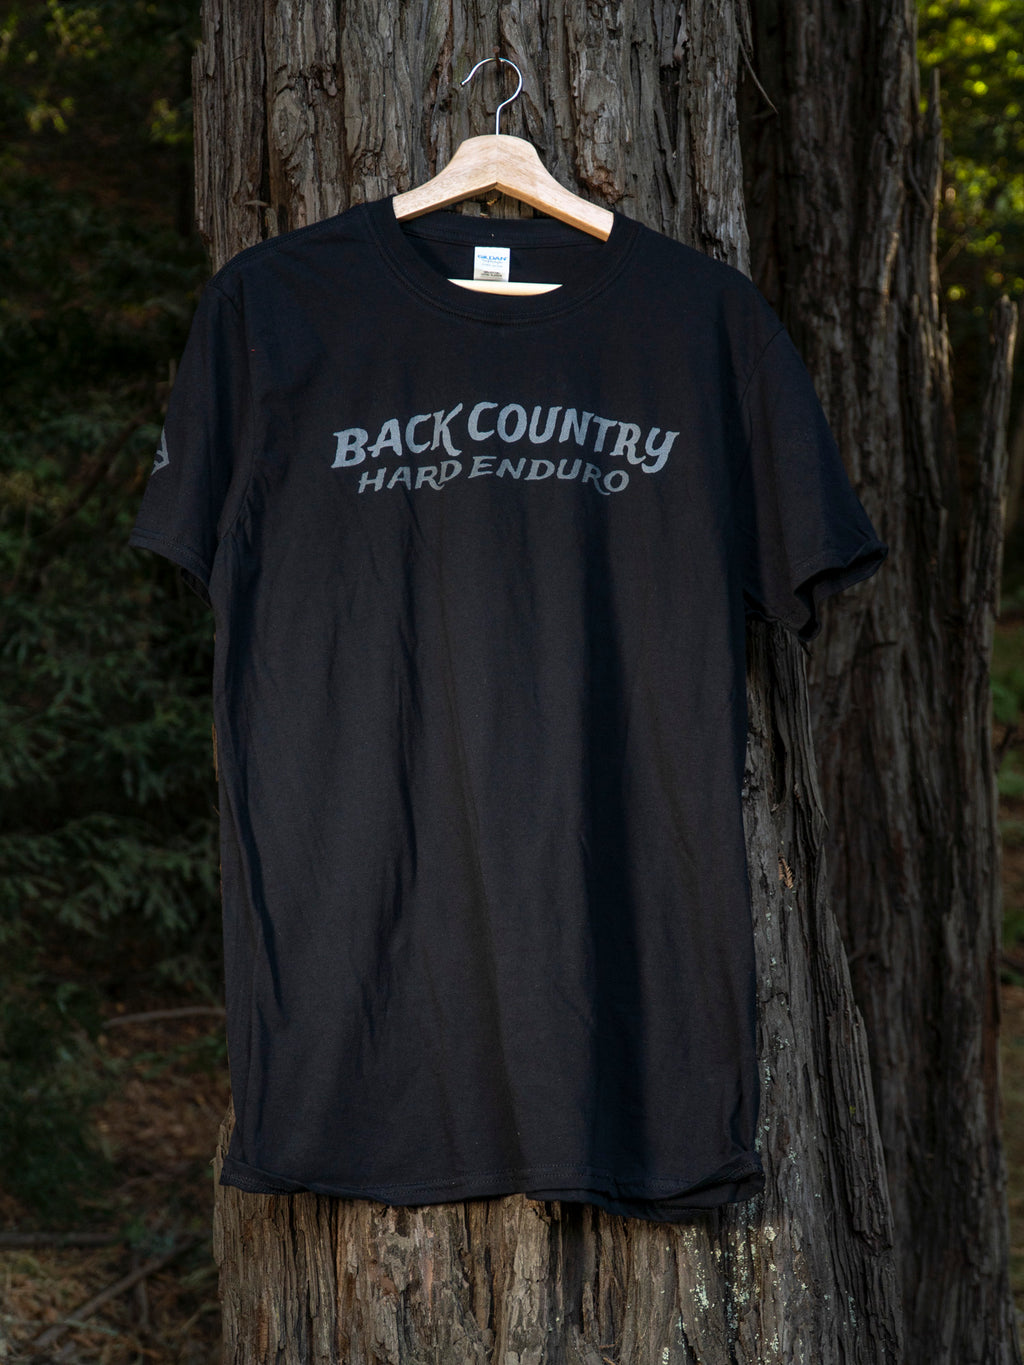 Backcountry Hard Enduro Shirt